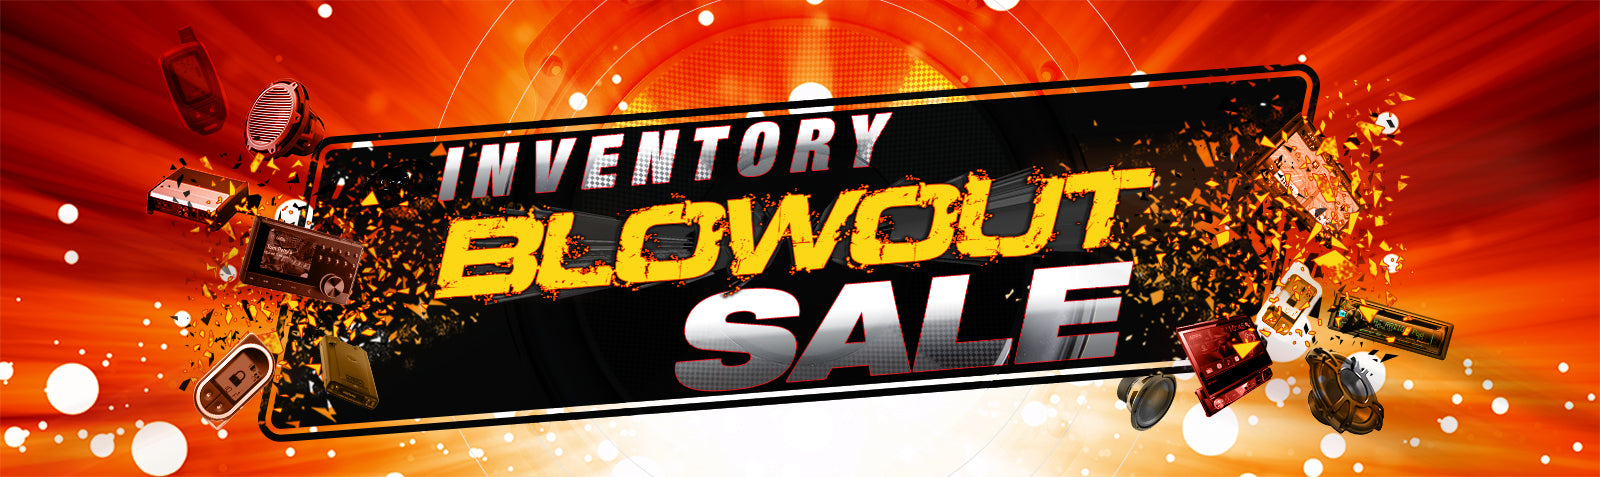 Inventory Blowout Banner